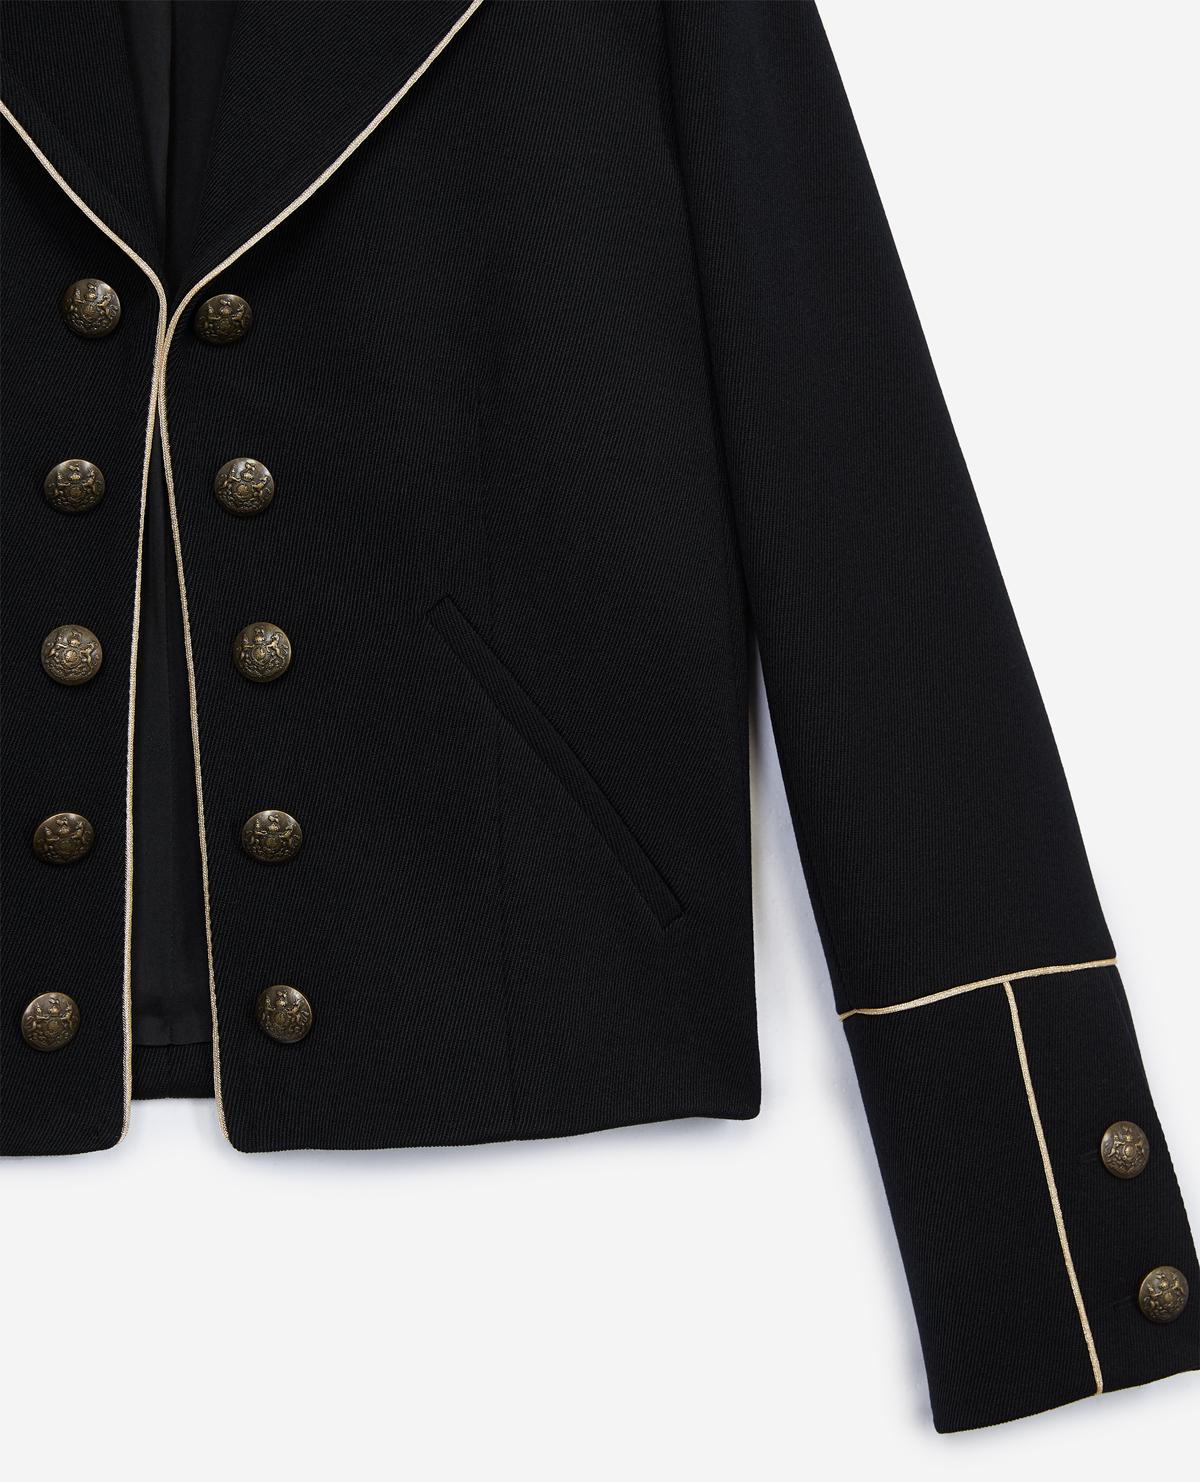 Lyst The Kooples Short Black Suit Jacket With Golden Buttons In Black